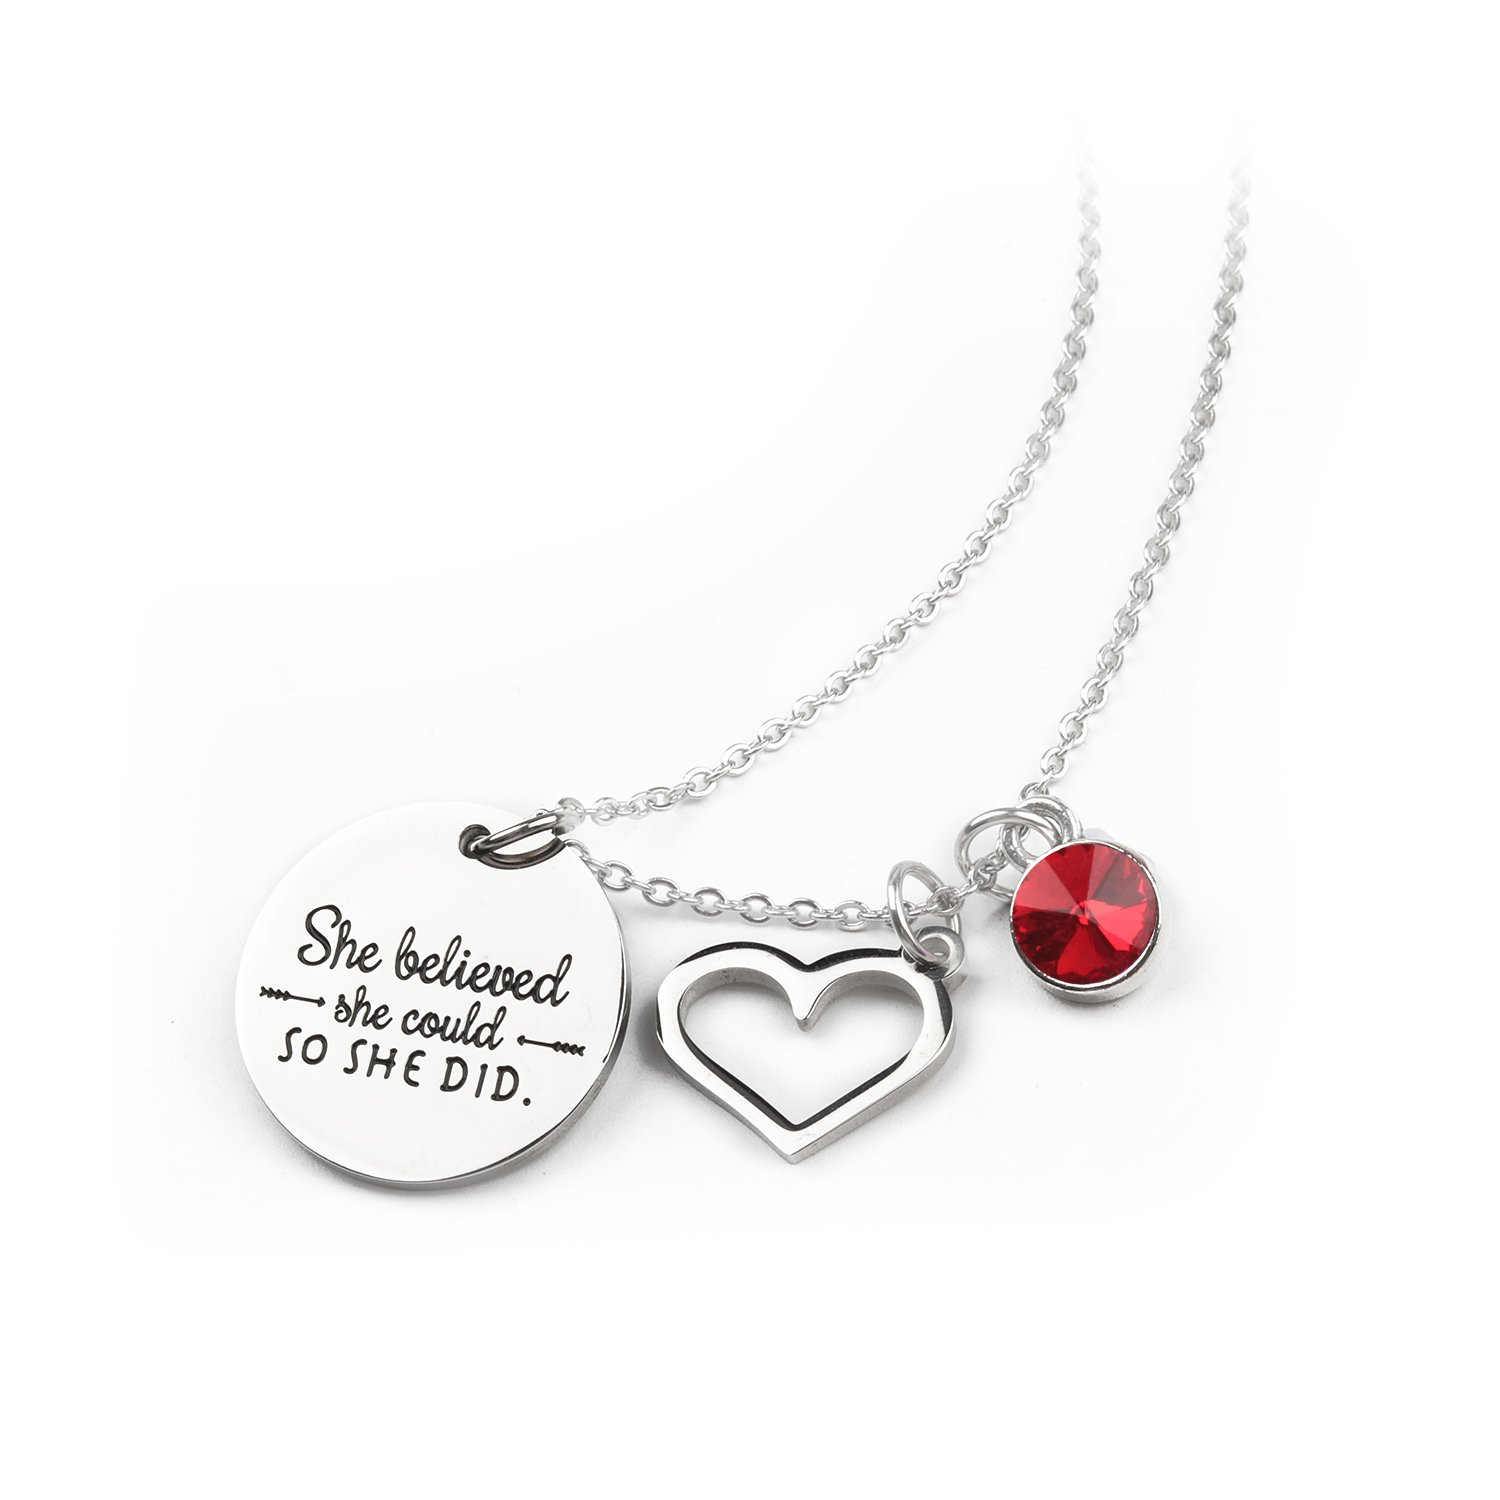 Zaoming She Believed She Could So She Did Inspirational Necklace Birthstone Best Friend Birthday Gifts Women Girls